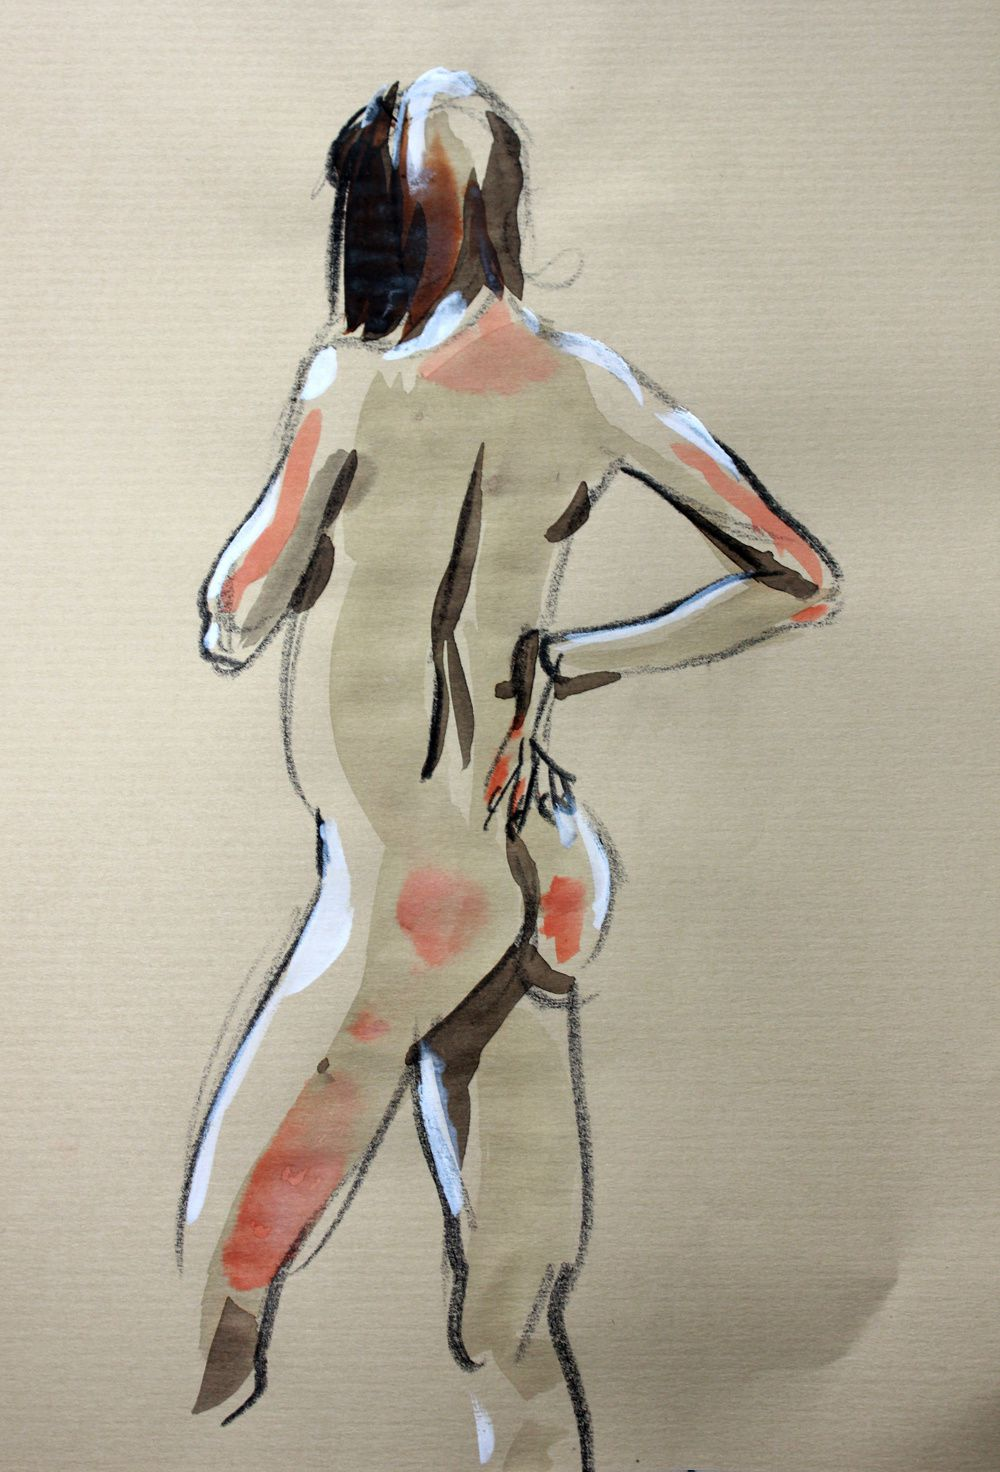 Modèle Vivant : pose de 6 minutes au crayon graphite, encre aquarelle et acrylique sur du papier kraft / Life-drawing : required time of 6 minutes, with brillant watercolour, graphite pencil & acrylic paint on a kraft paper